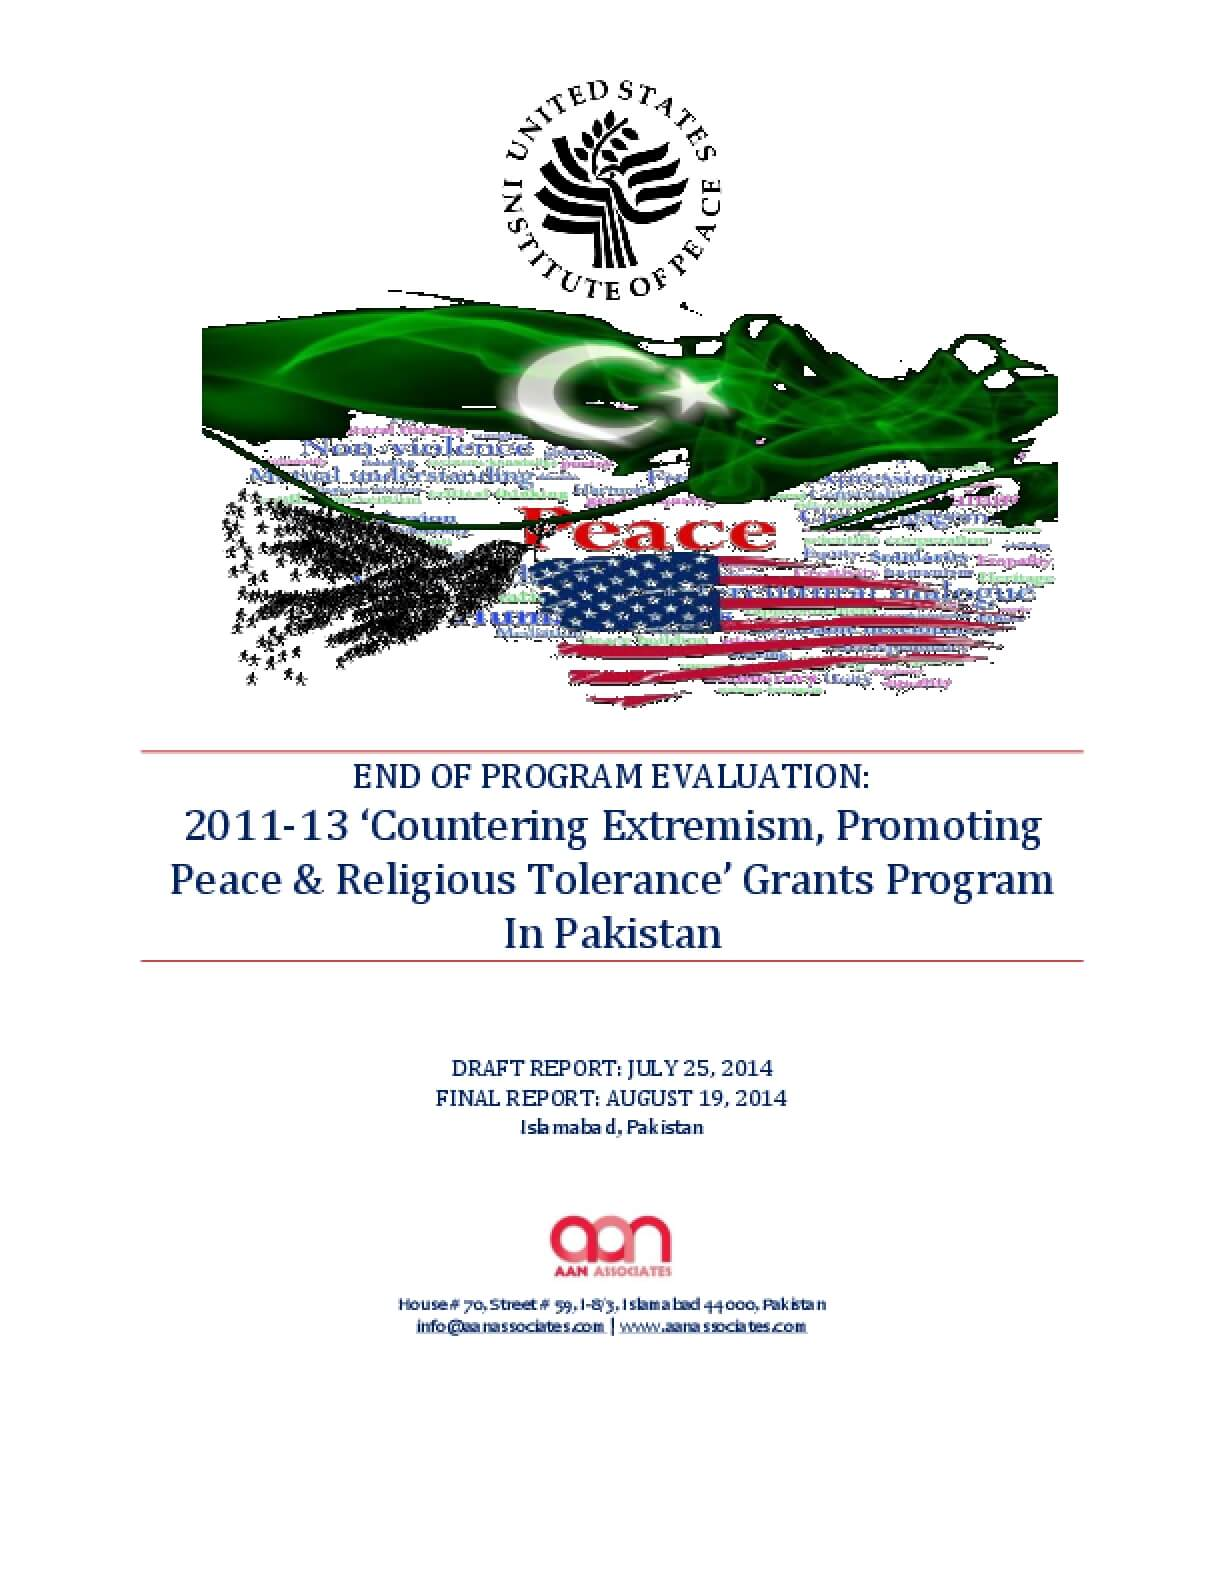 End of Program Evaluation: 2011-13 'Countering Extremism, Promoting Peace & Religious Tolerance' Grants Program in Pakistan